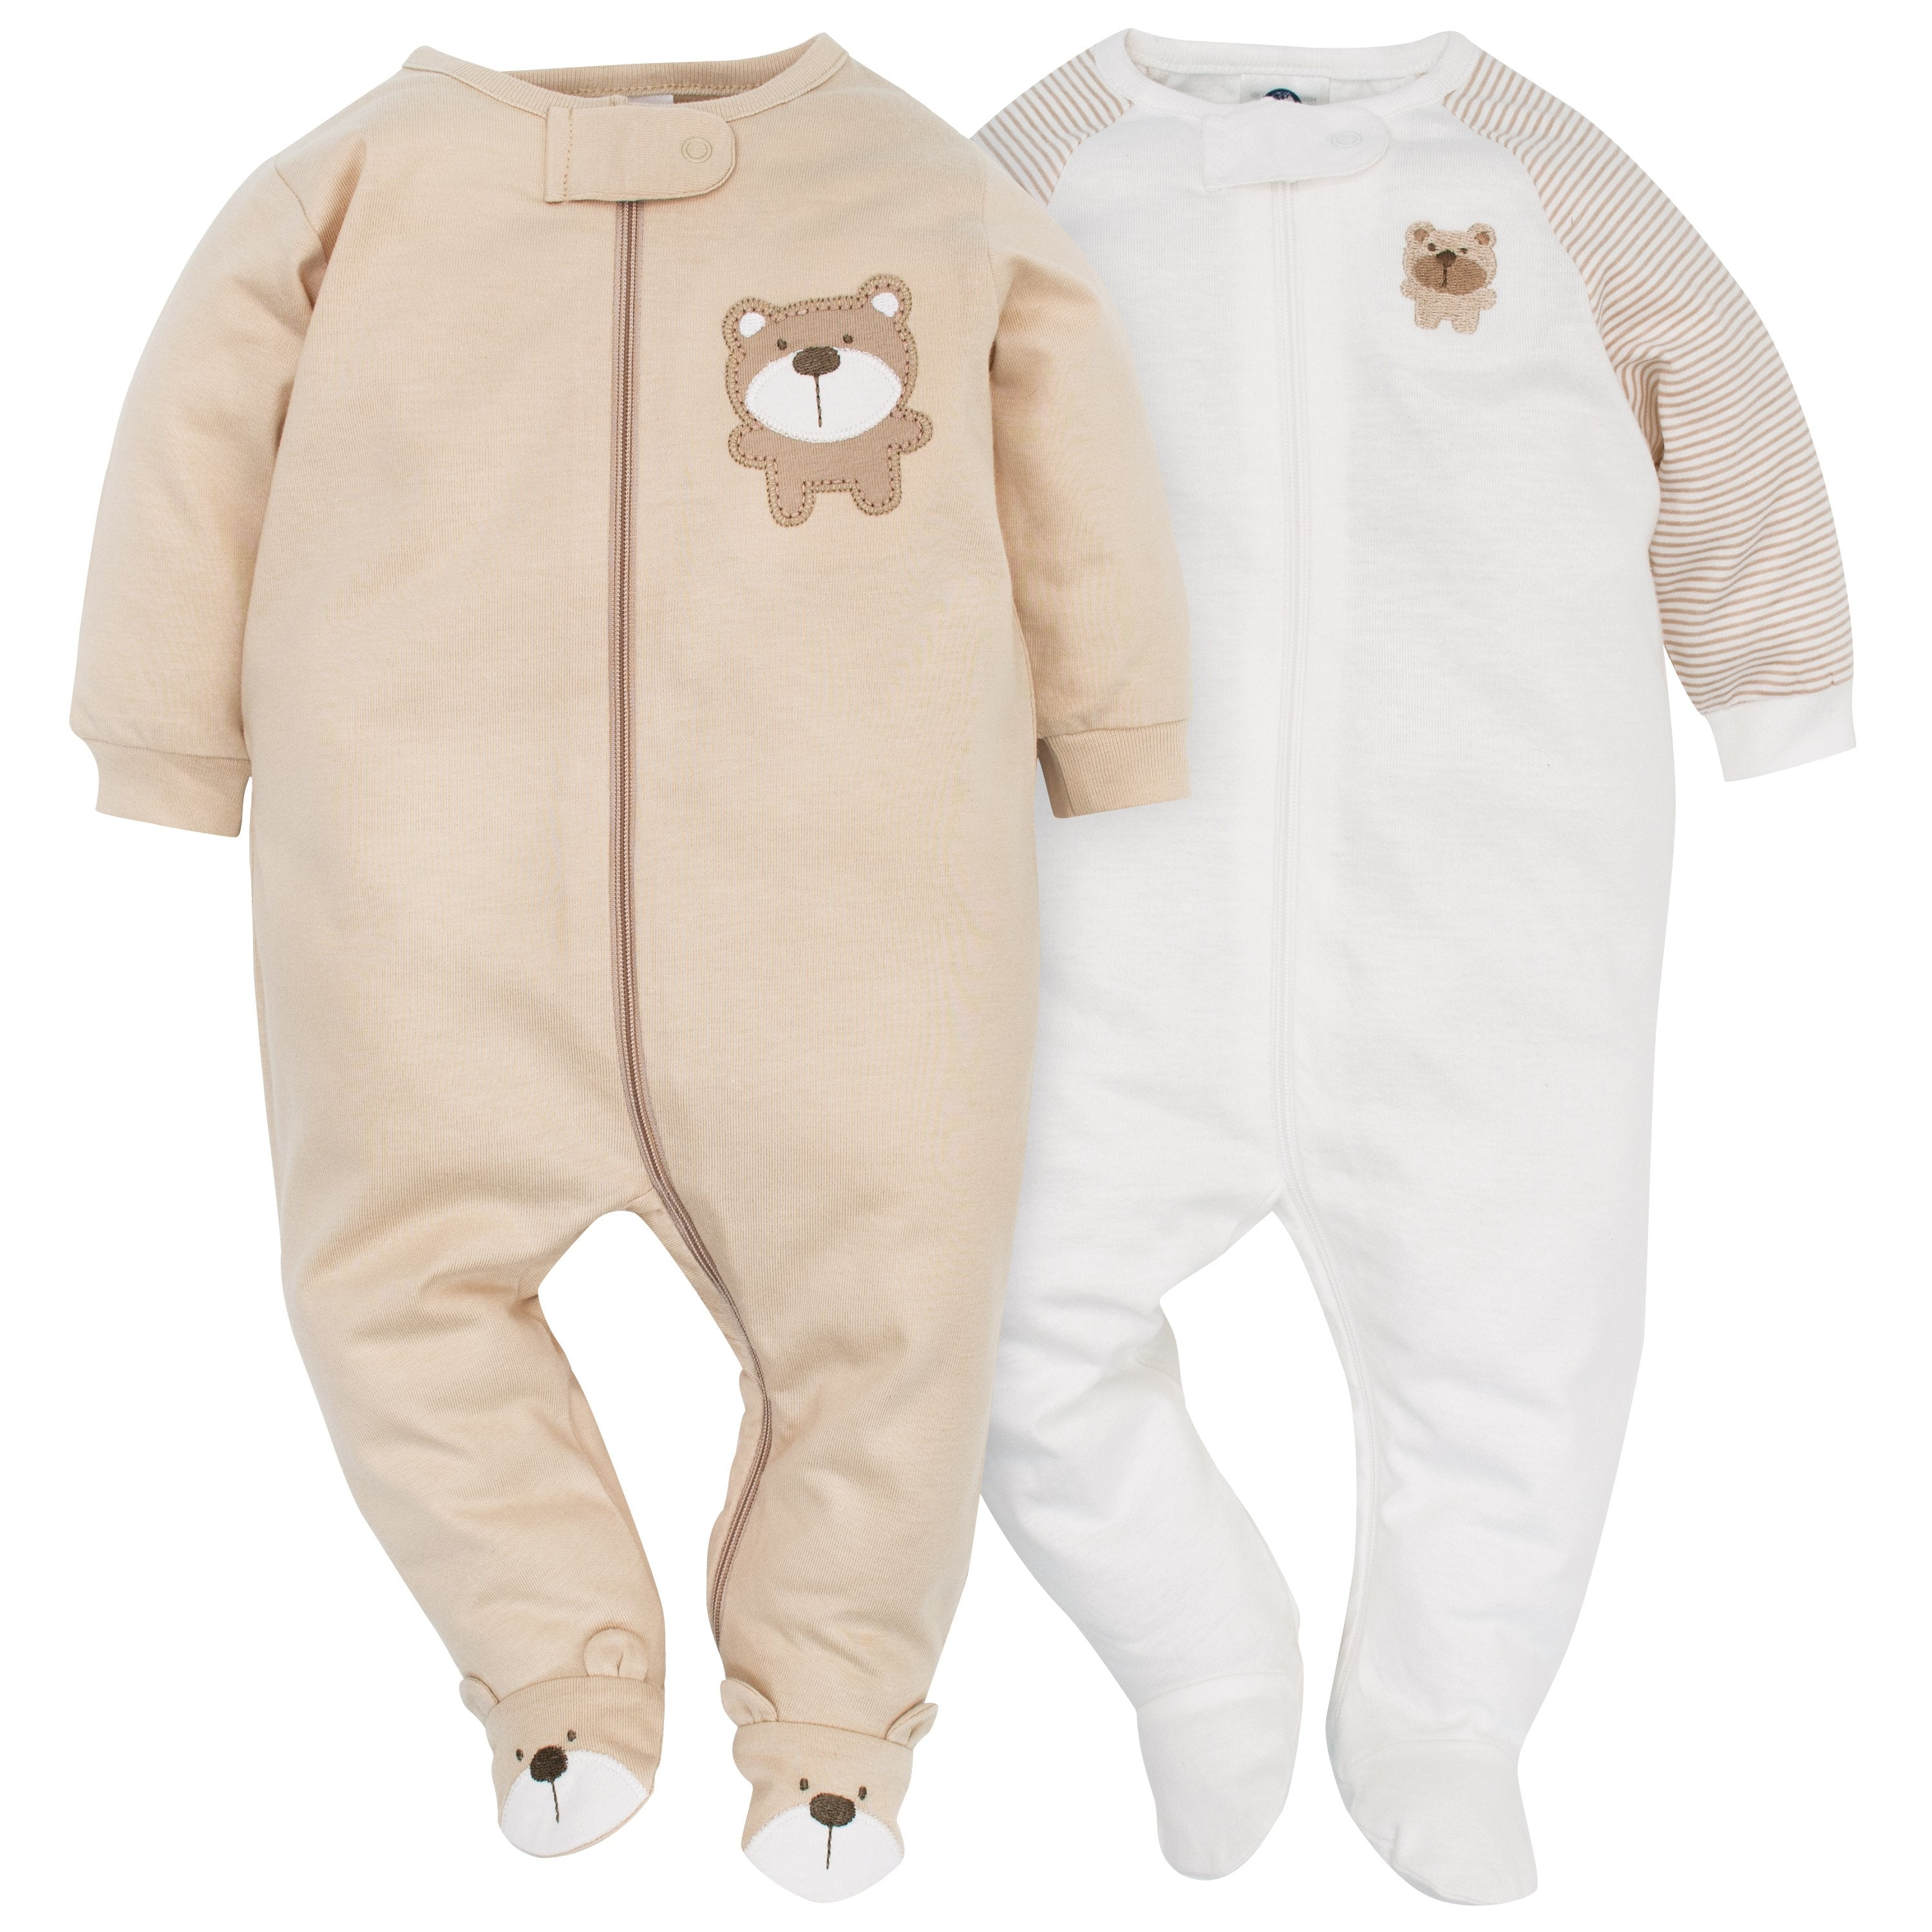 2 Pack Neutral Brown Bear Sleep N Play Gerber Childrenswear